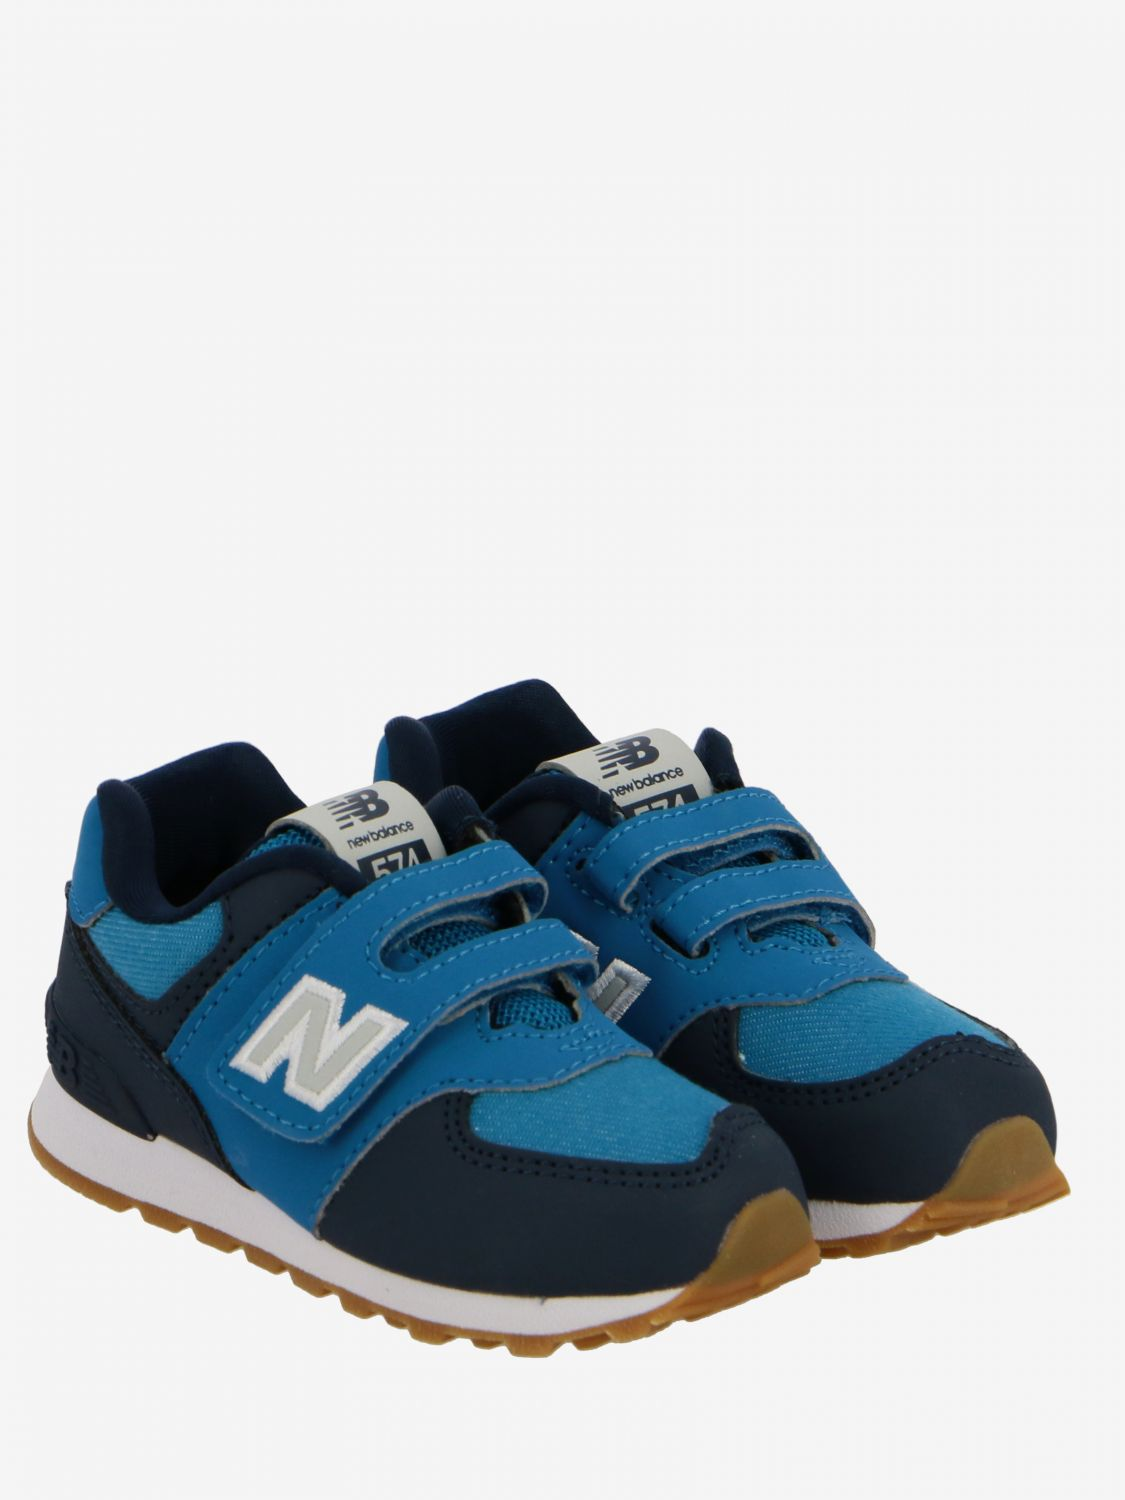 Shoes kids New Balance gnawed blue 2